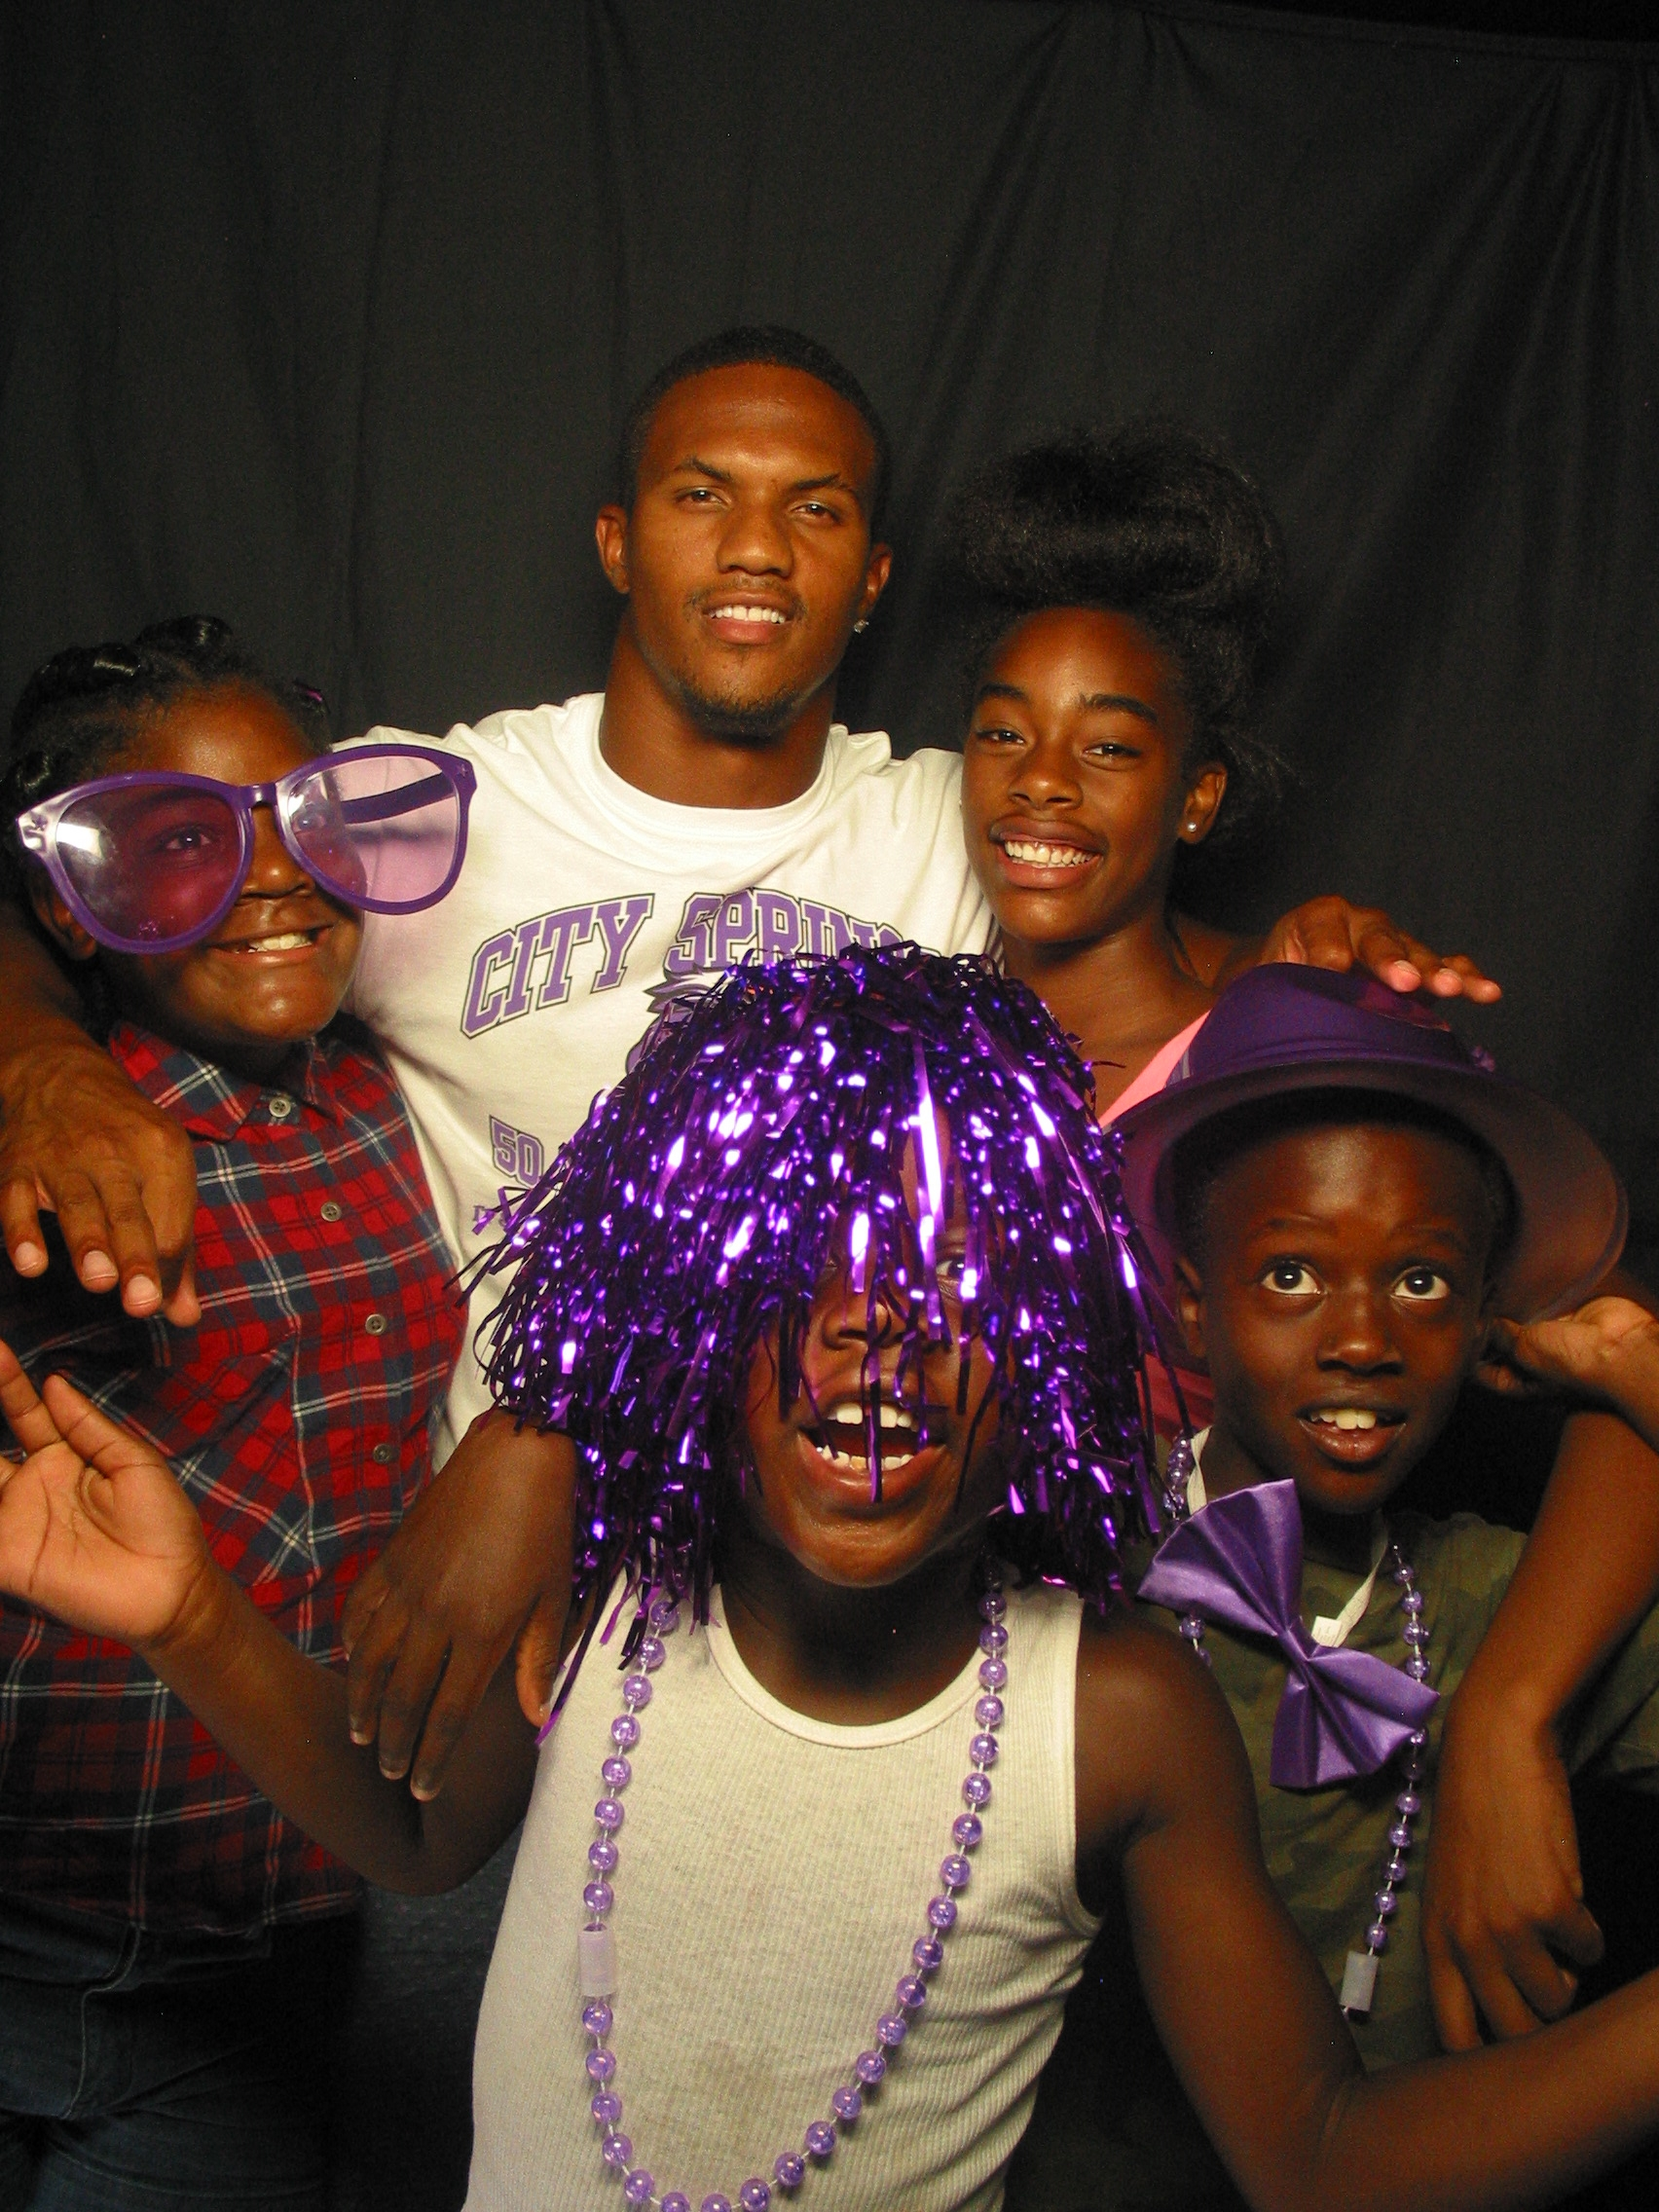 City Springs' birthday celebration attendees enter the photo booth. The booth attracts the young and the young-at-heart.